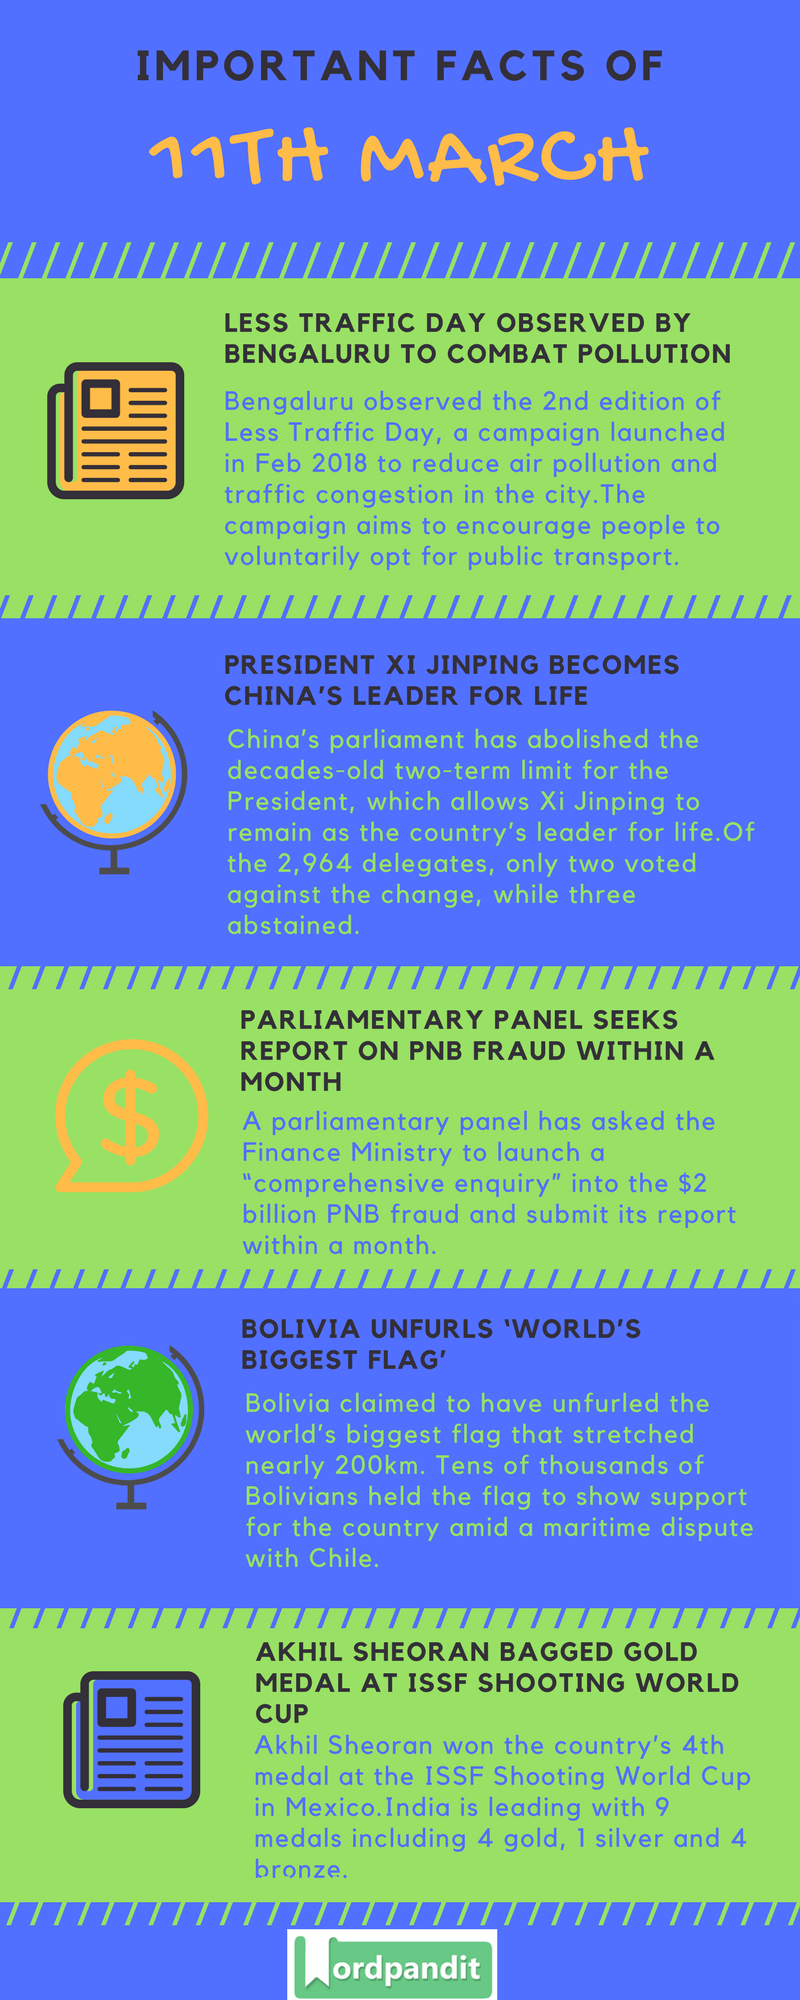 Daily Current Affairs 11 March 2018 Current Affairs Quiz March 11 2018 Current Affairs Infographic